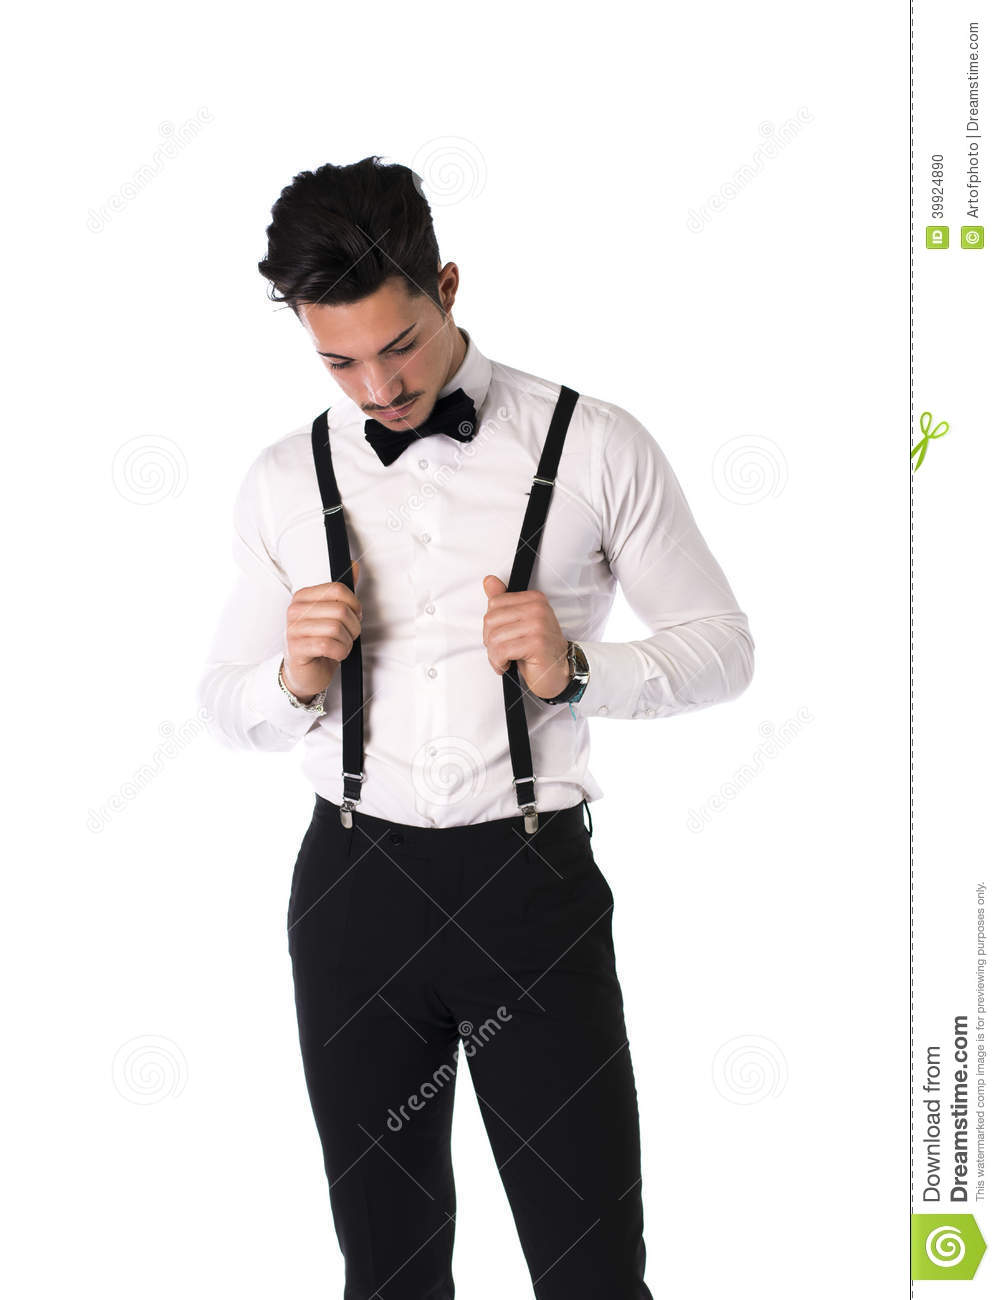 The suspenders are elastic and the bow ties are not a very shinny satin. This wizard will have you pick the color of suspender and then the bow tie. You will get a discount on the set at the end.